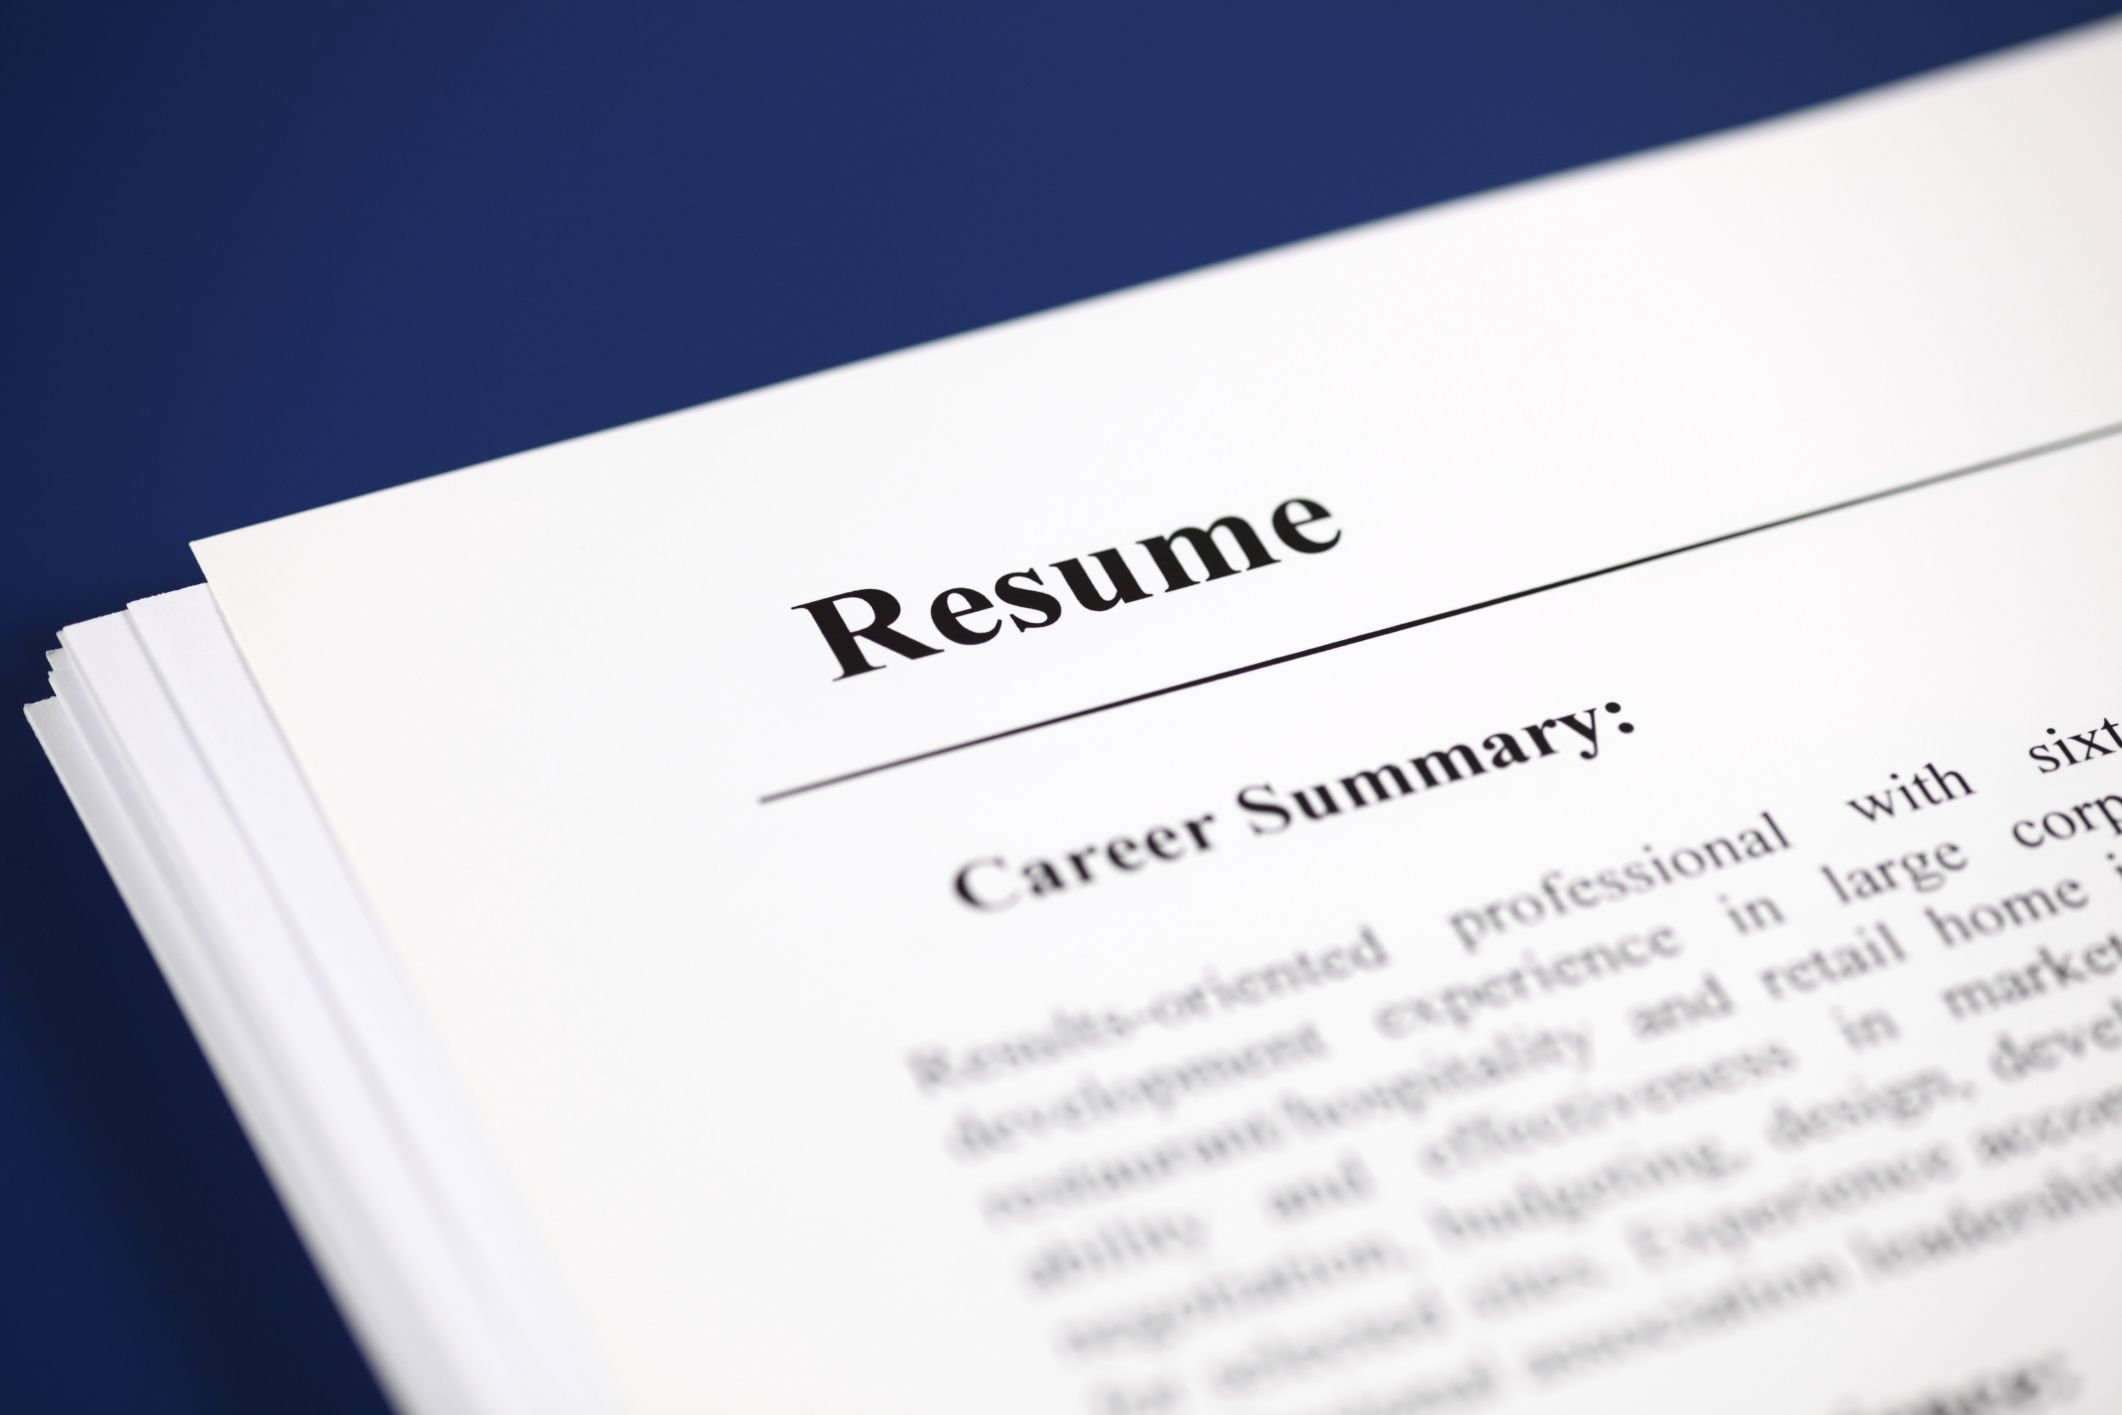 what is a summary of qualifications on a resume